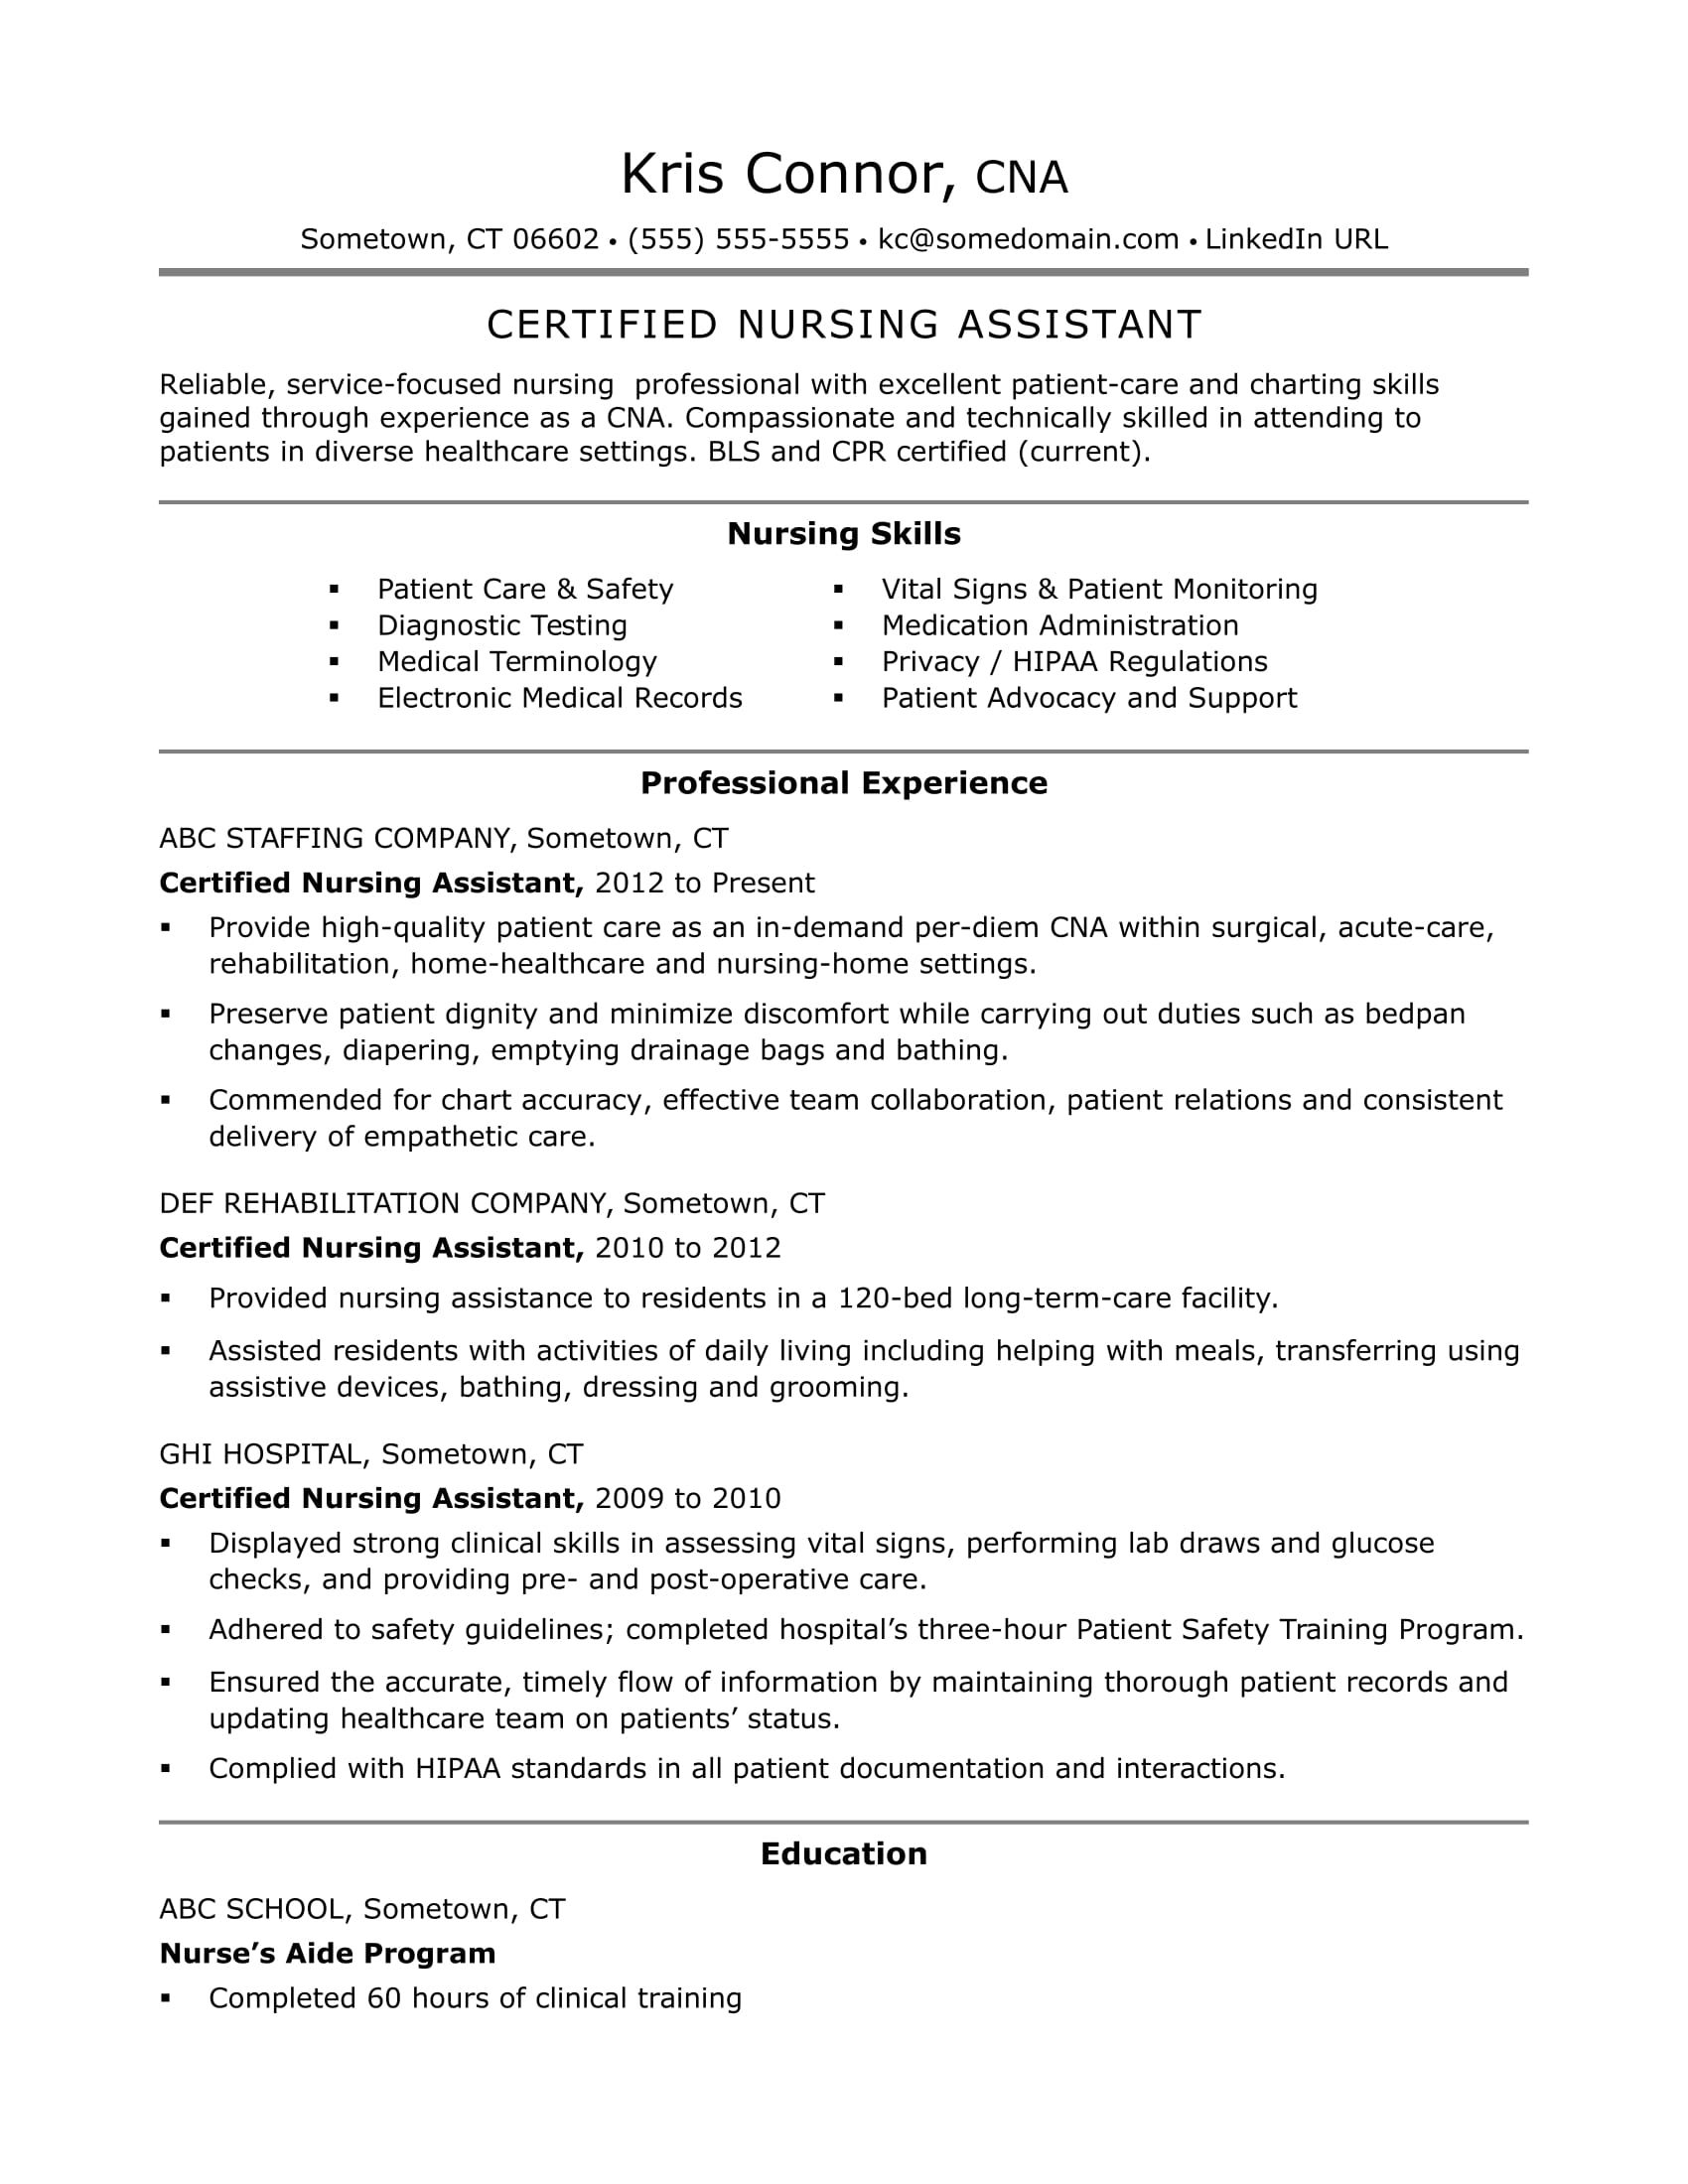 certified nursing assistant sample resume - Saman.cinetonic.co